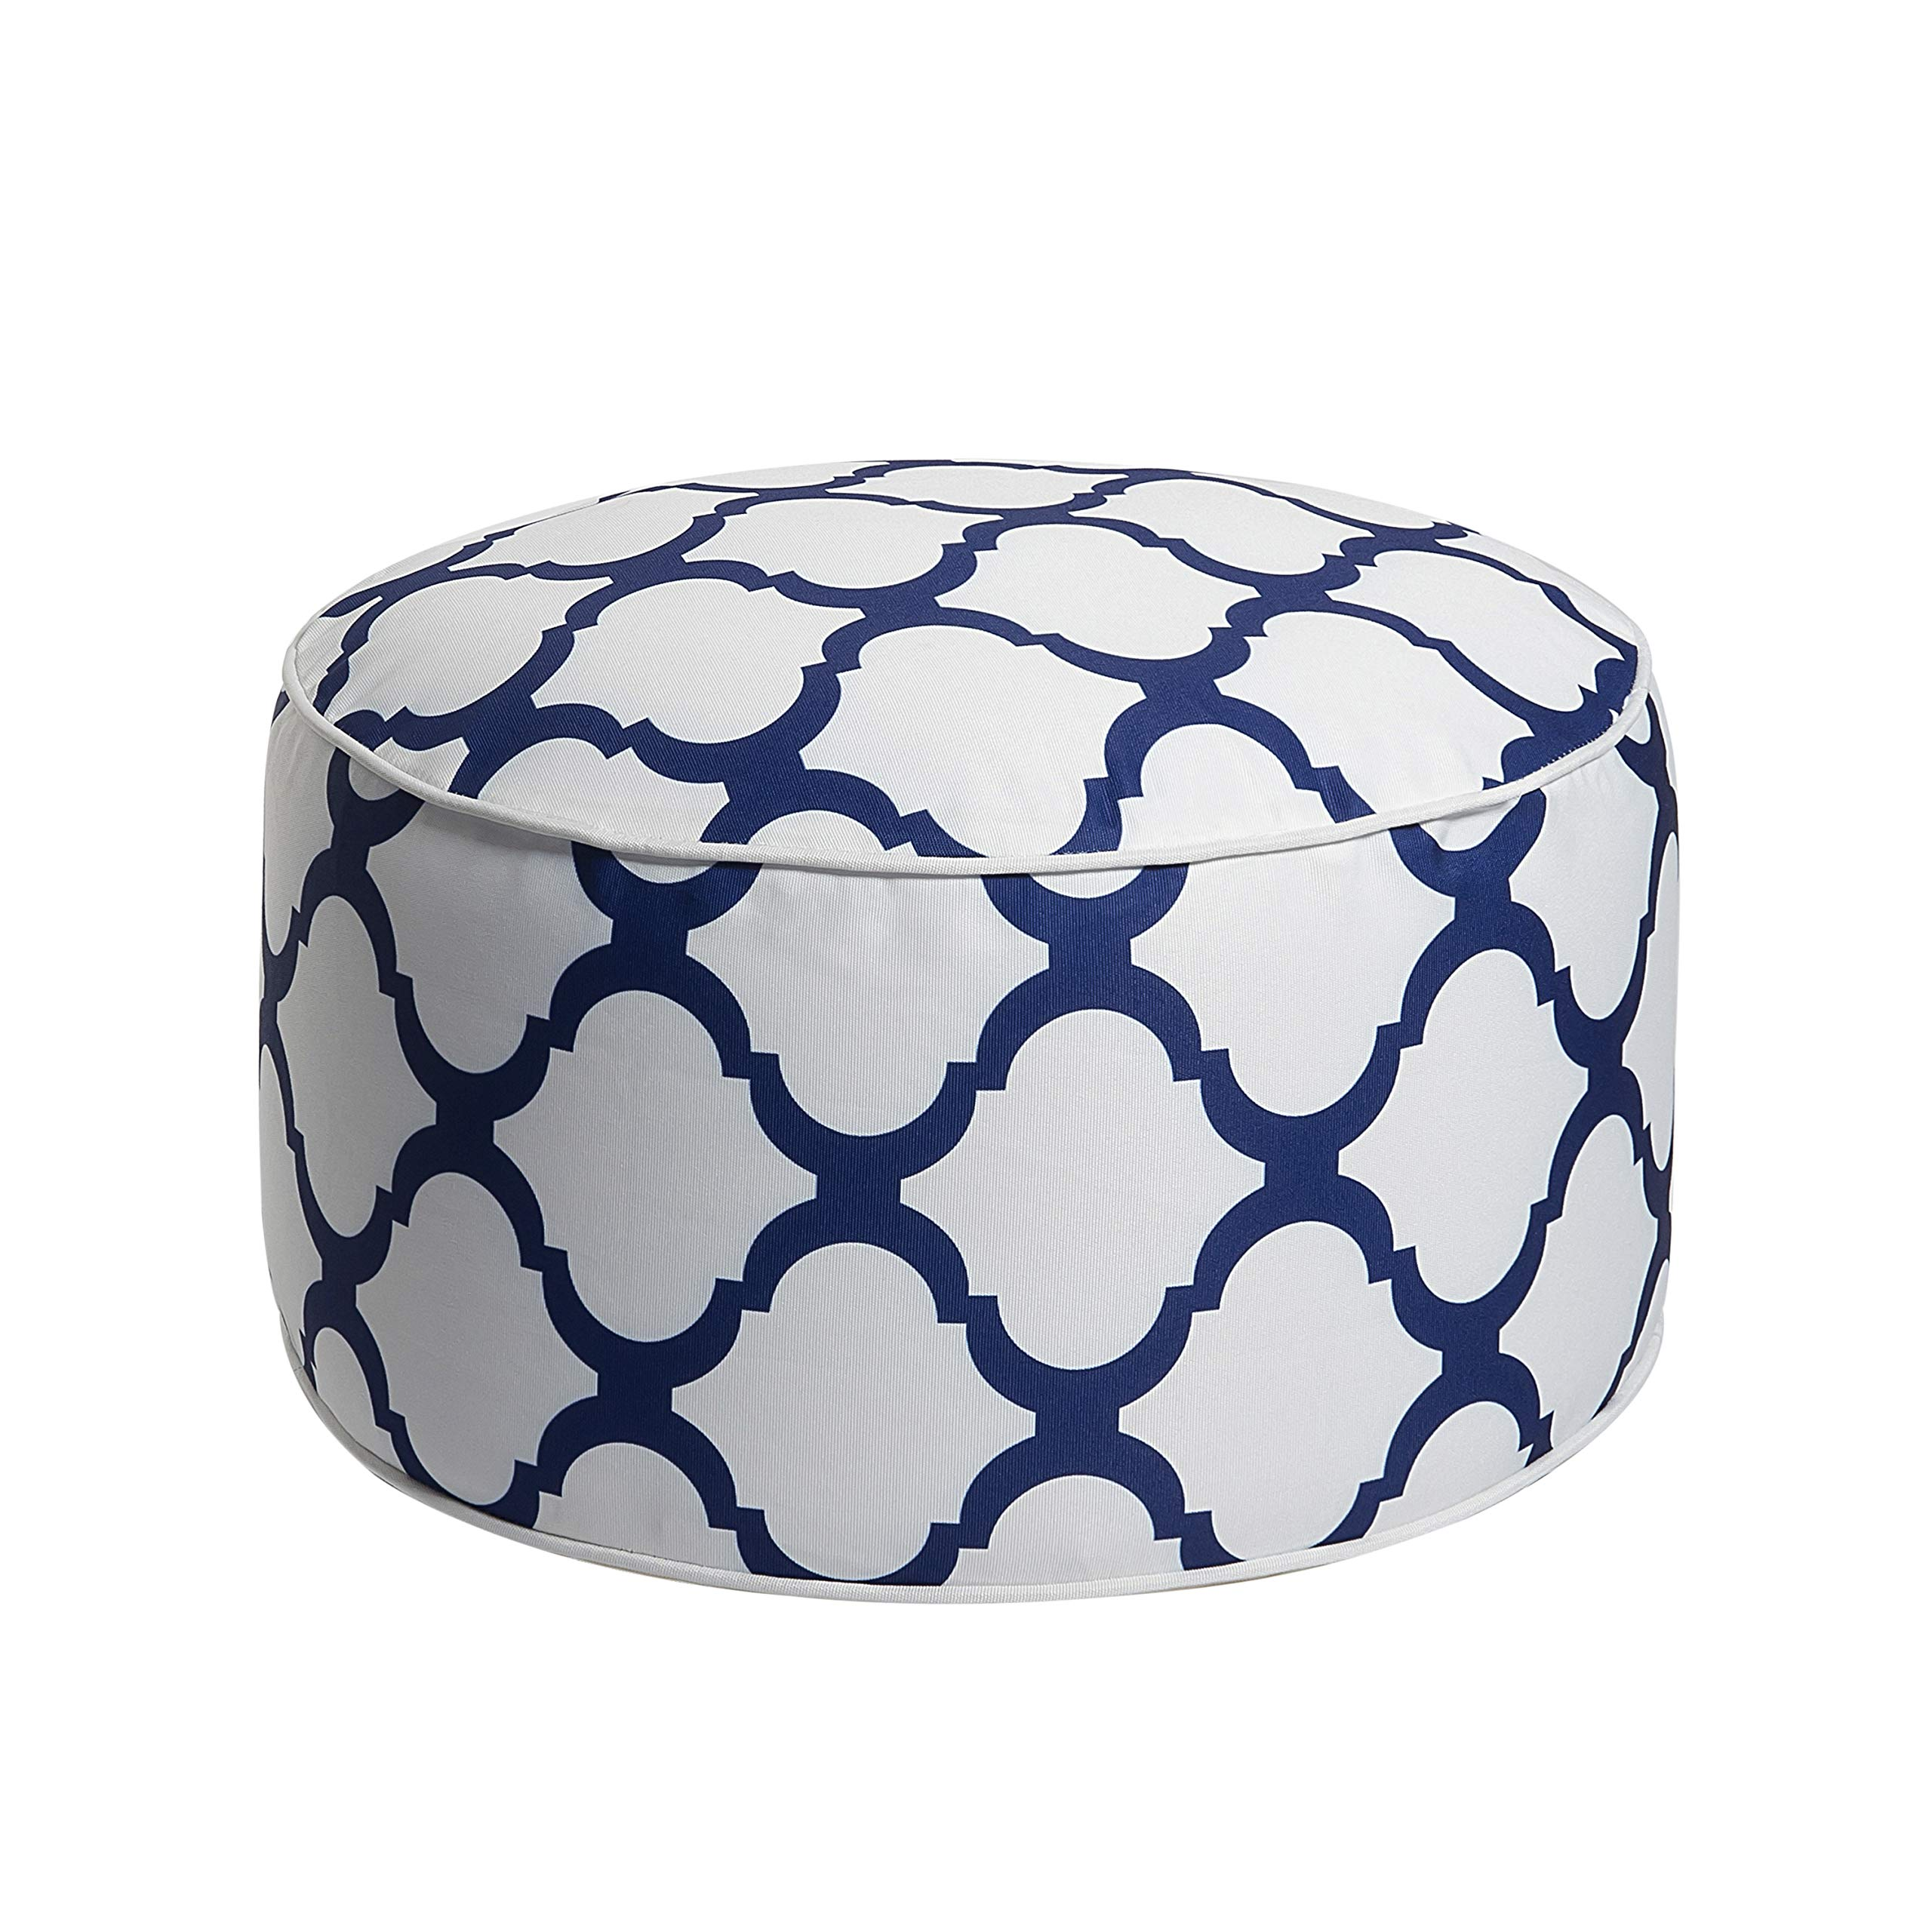 Art Leon Outdoor Inflatable Ottoman White Round Patio Footstool for Kids and Adults, Patio, Deck, Front Porch, Backyard, Garden